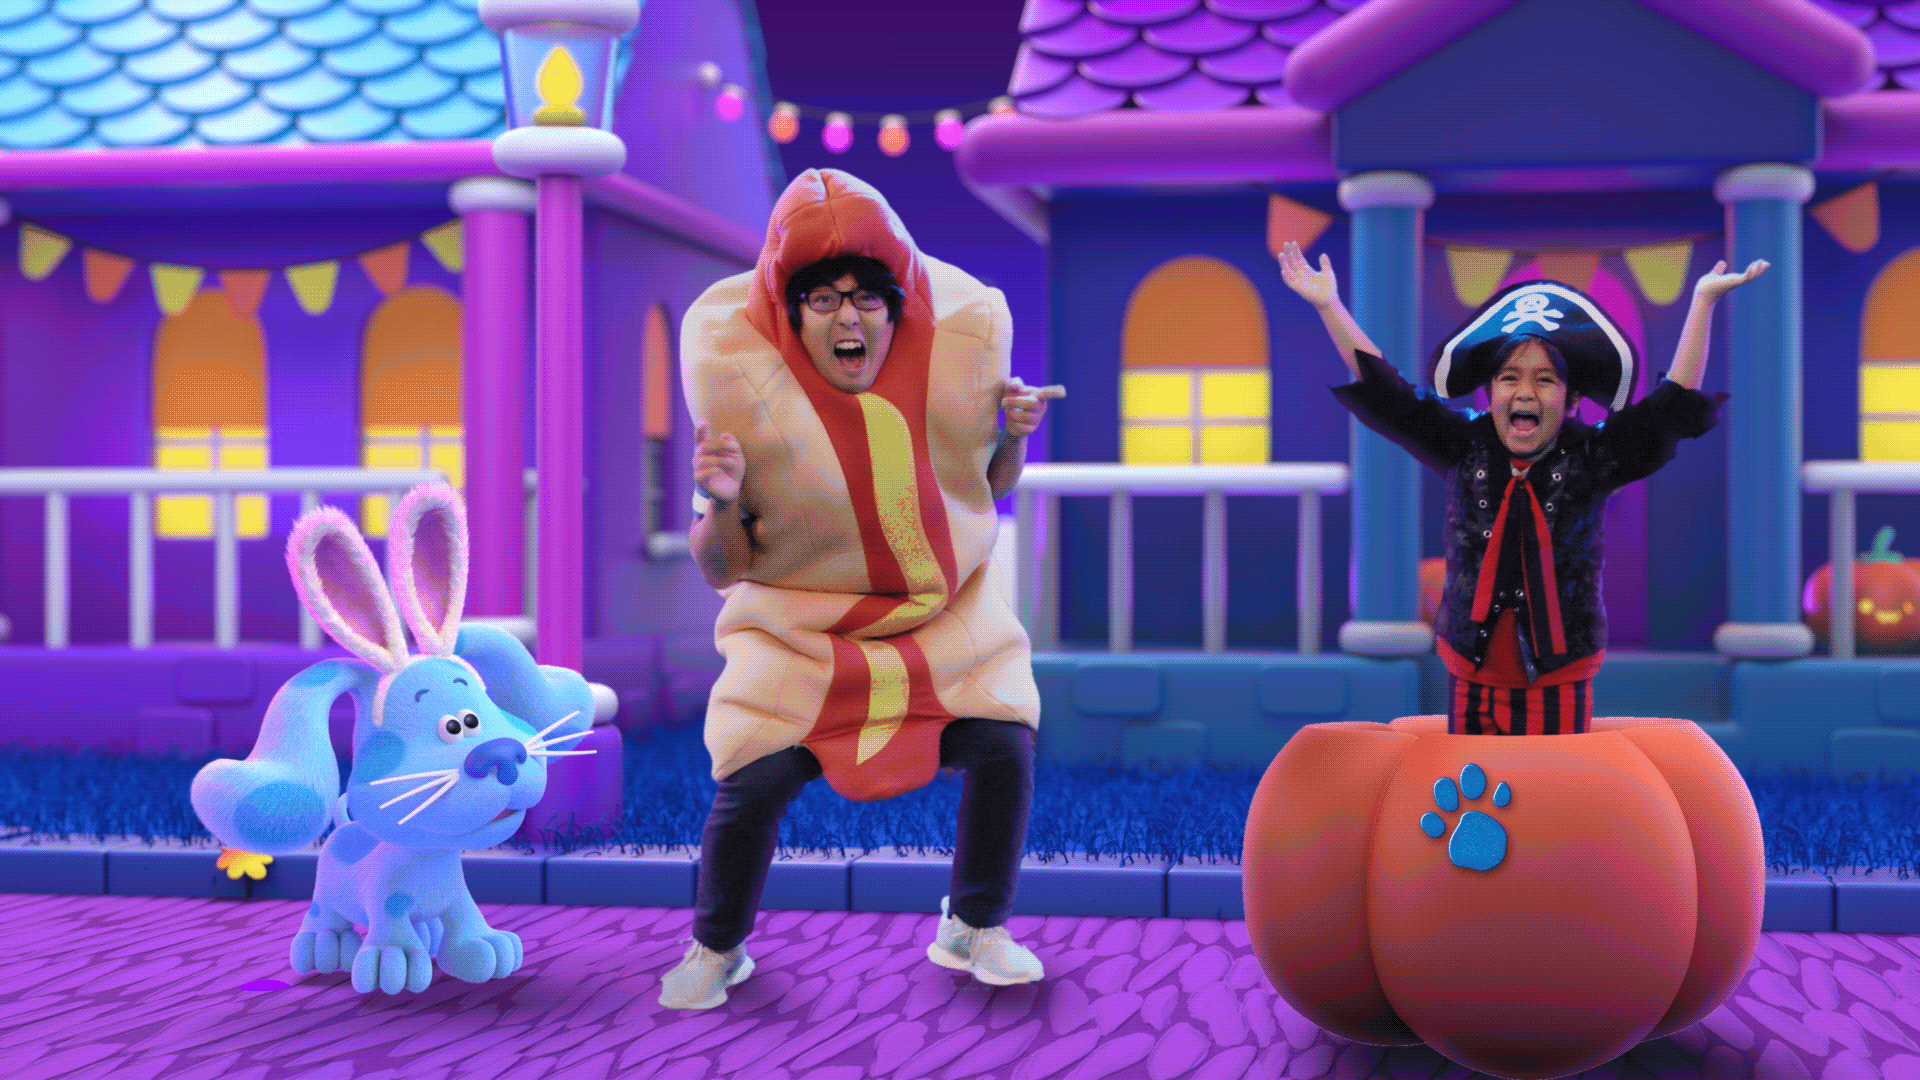 Upcoming Halloween Or Fall Campaigns 2020 Nick Jr. Halloween 2019 Campaign on Behance in 2020   Nick jr